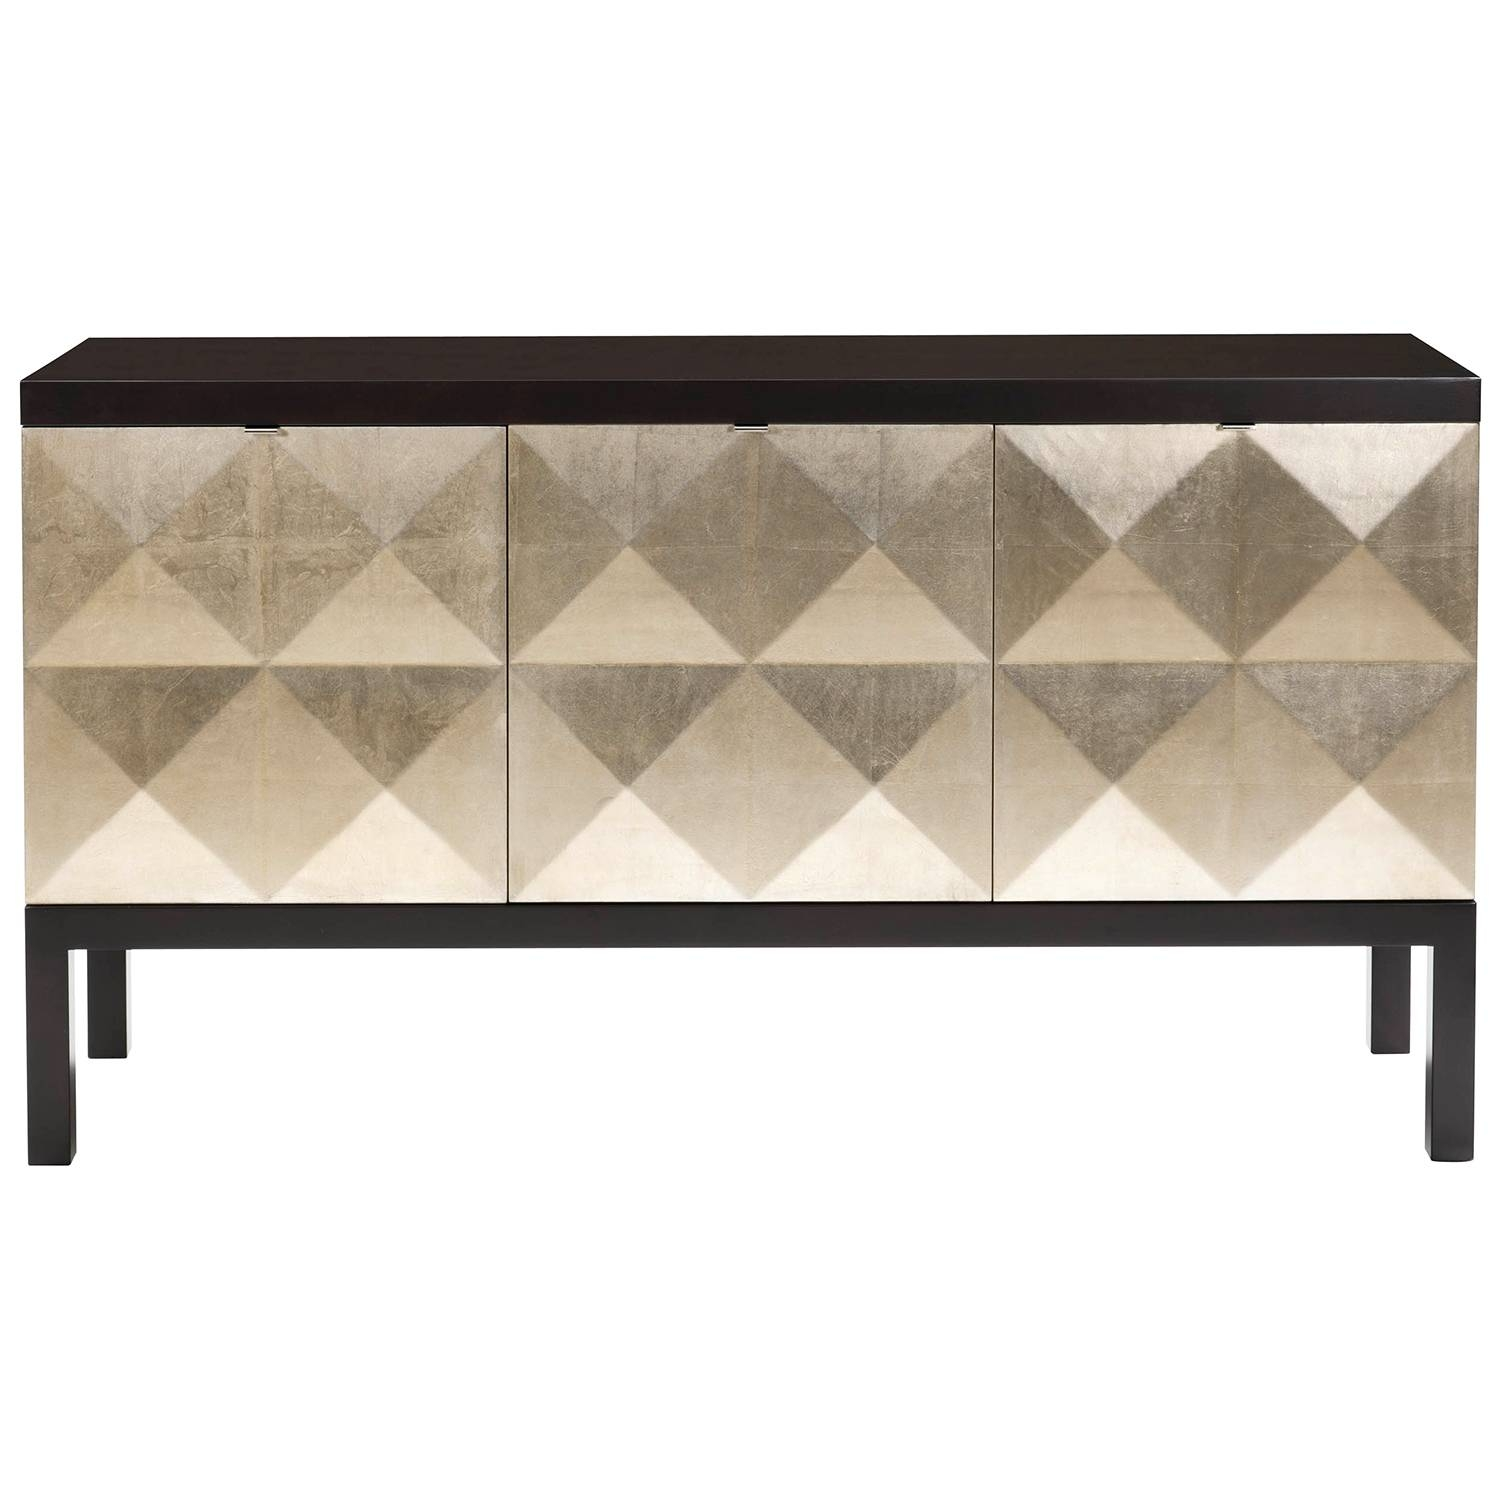 Belle Meade Signature Kipling Sideboard @zinc_Door | Dinner Party inside Black And Silver Sideboards (Image 4 of 30)